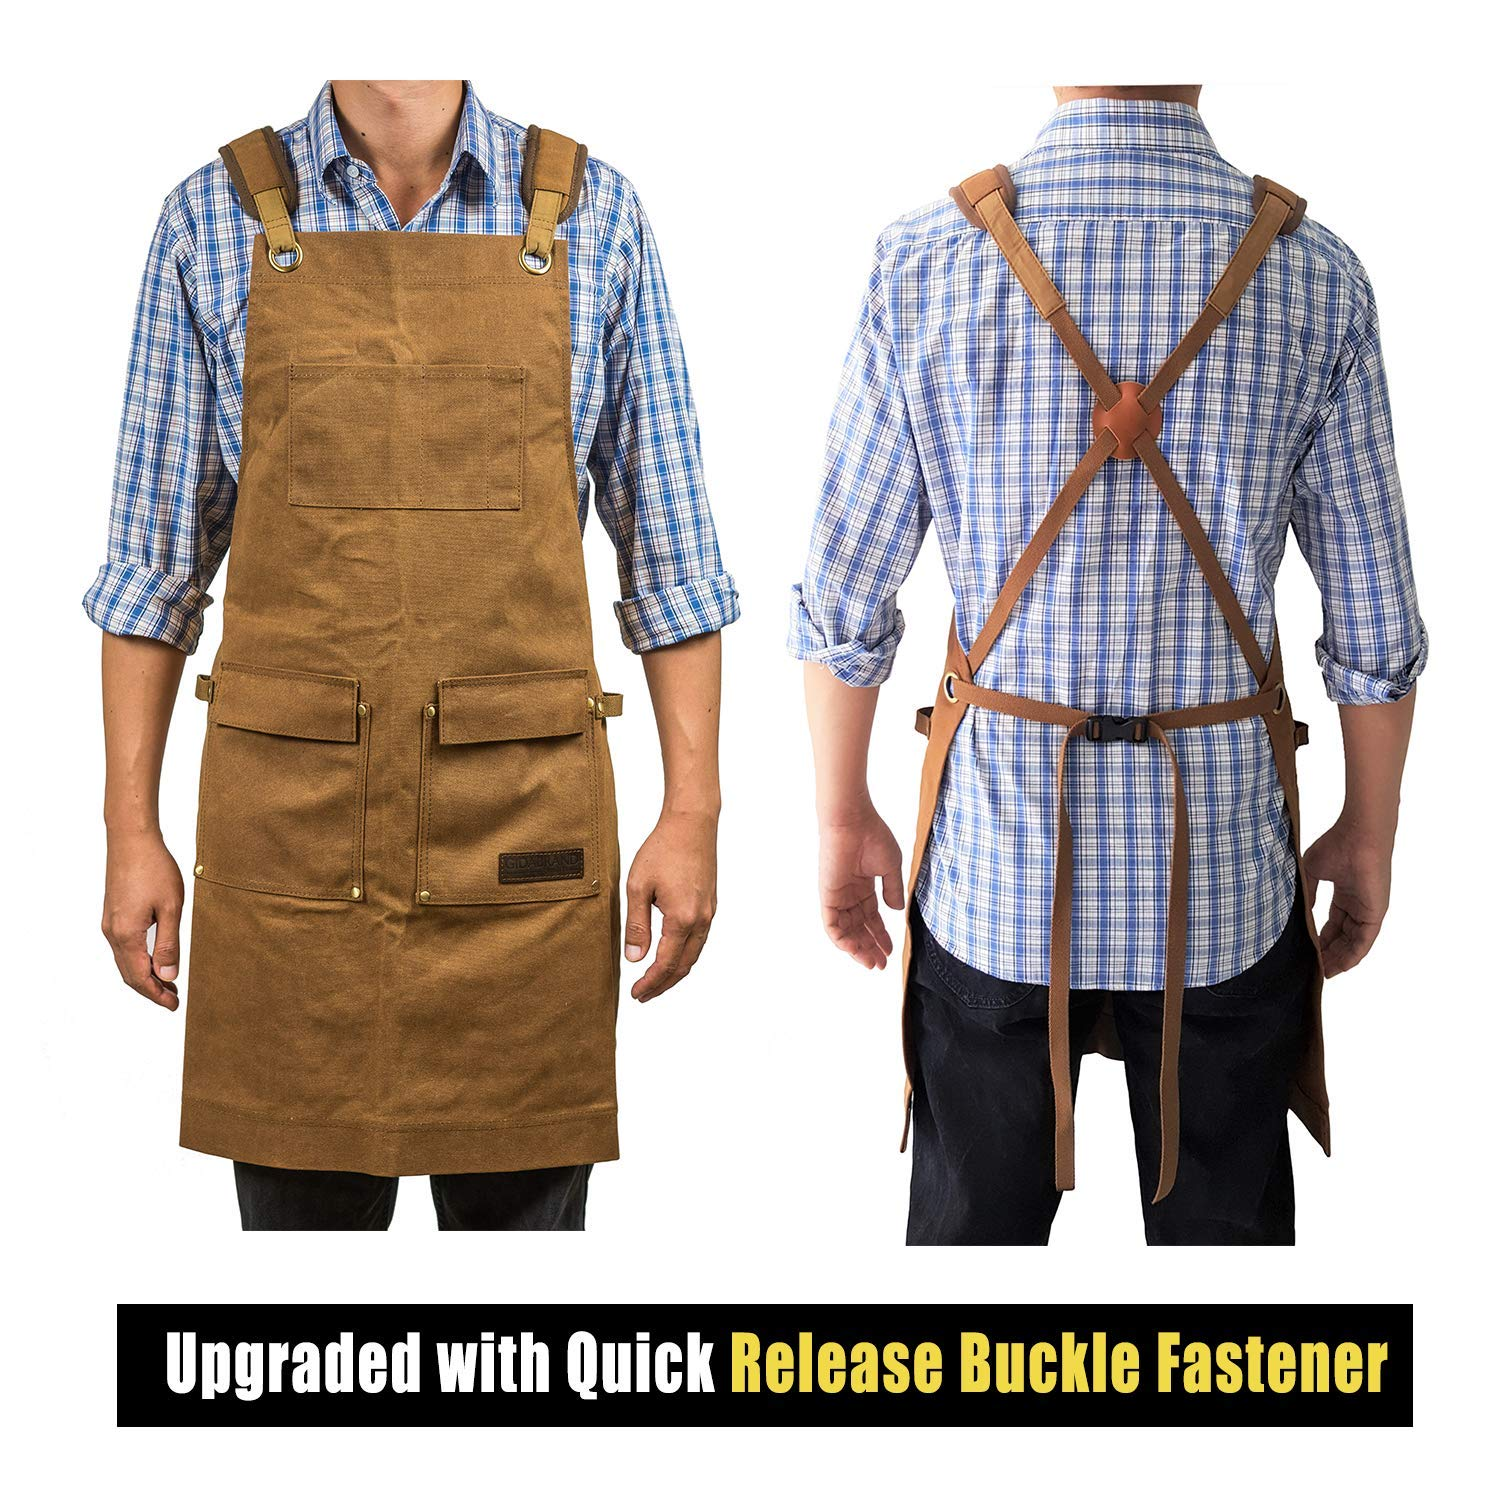 Luxury Waxed Canvas Shop Apron | Heavy Duty Work Apron for Men & Women with Pocket & Cross-Back Straps | Adjustable Tool Apron Up To XXL | Long, Thick, Water Resistant Workshop Apron in Gift Box by GIDABRAND (Image #6)